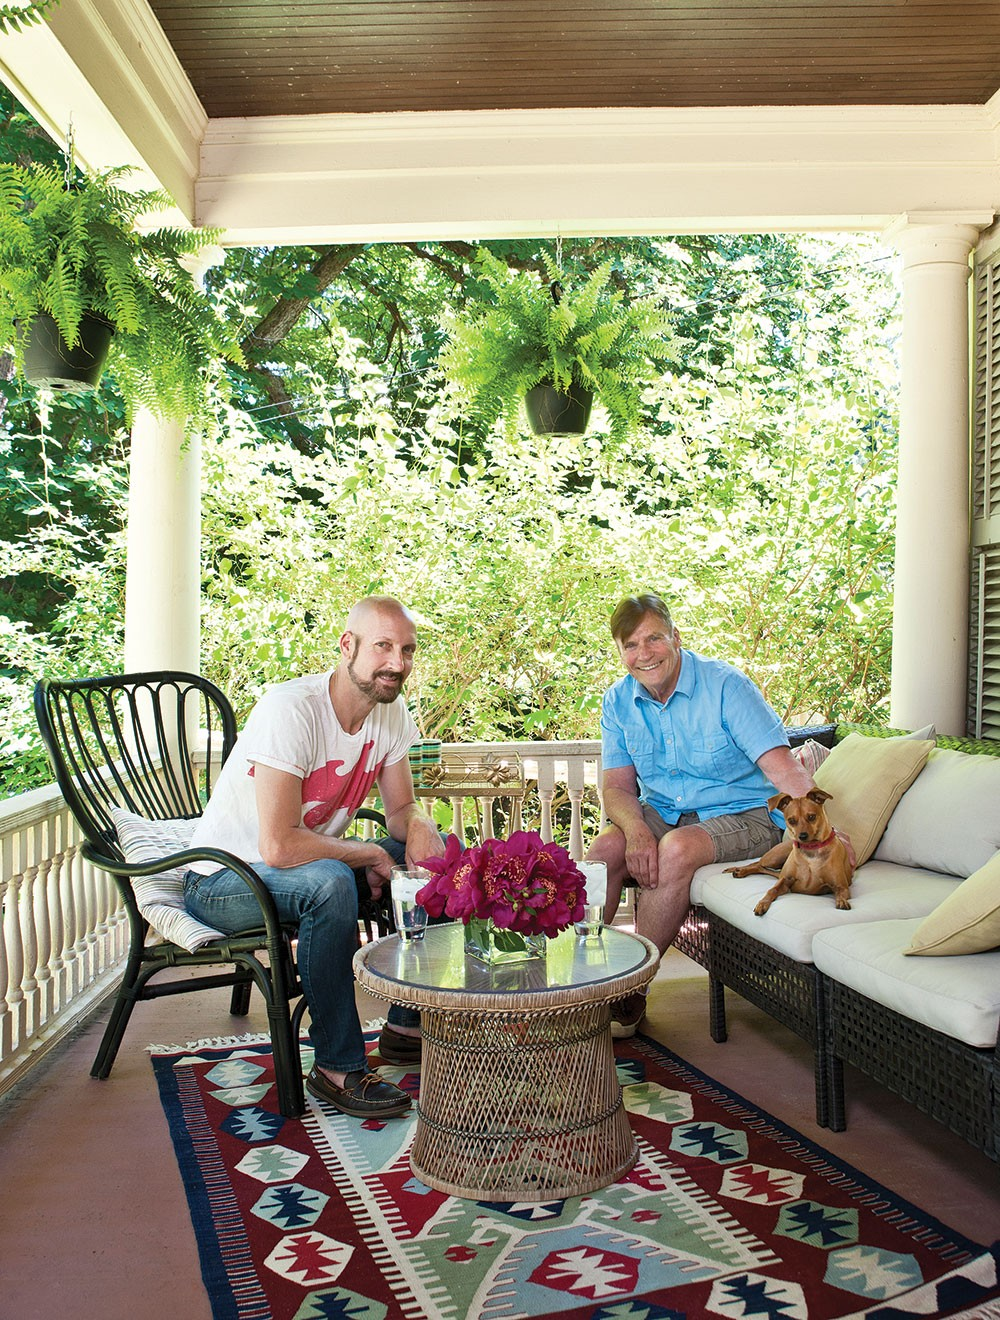 """Douglas Sexton, Danny O'Connell, and their dog Dean on their front porch. """"We're friends with everyone on the street,"""" O'Connell says. Sexton agrees. """"People come over and hang out. It really has become a what we wanted it to be—a gathering spot for friends and family."""" Even the neighbor's chickens regularly come to visit. - DEBORAH DEGRAFFENREID"""